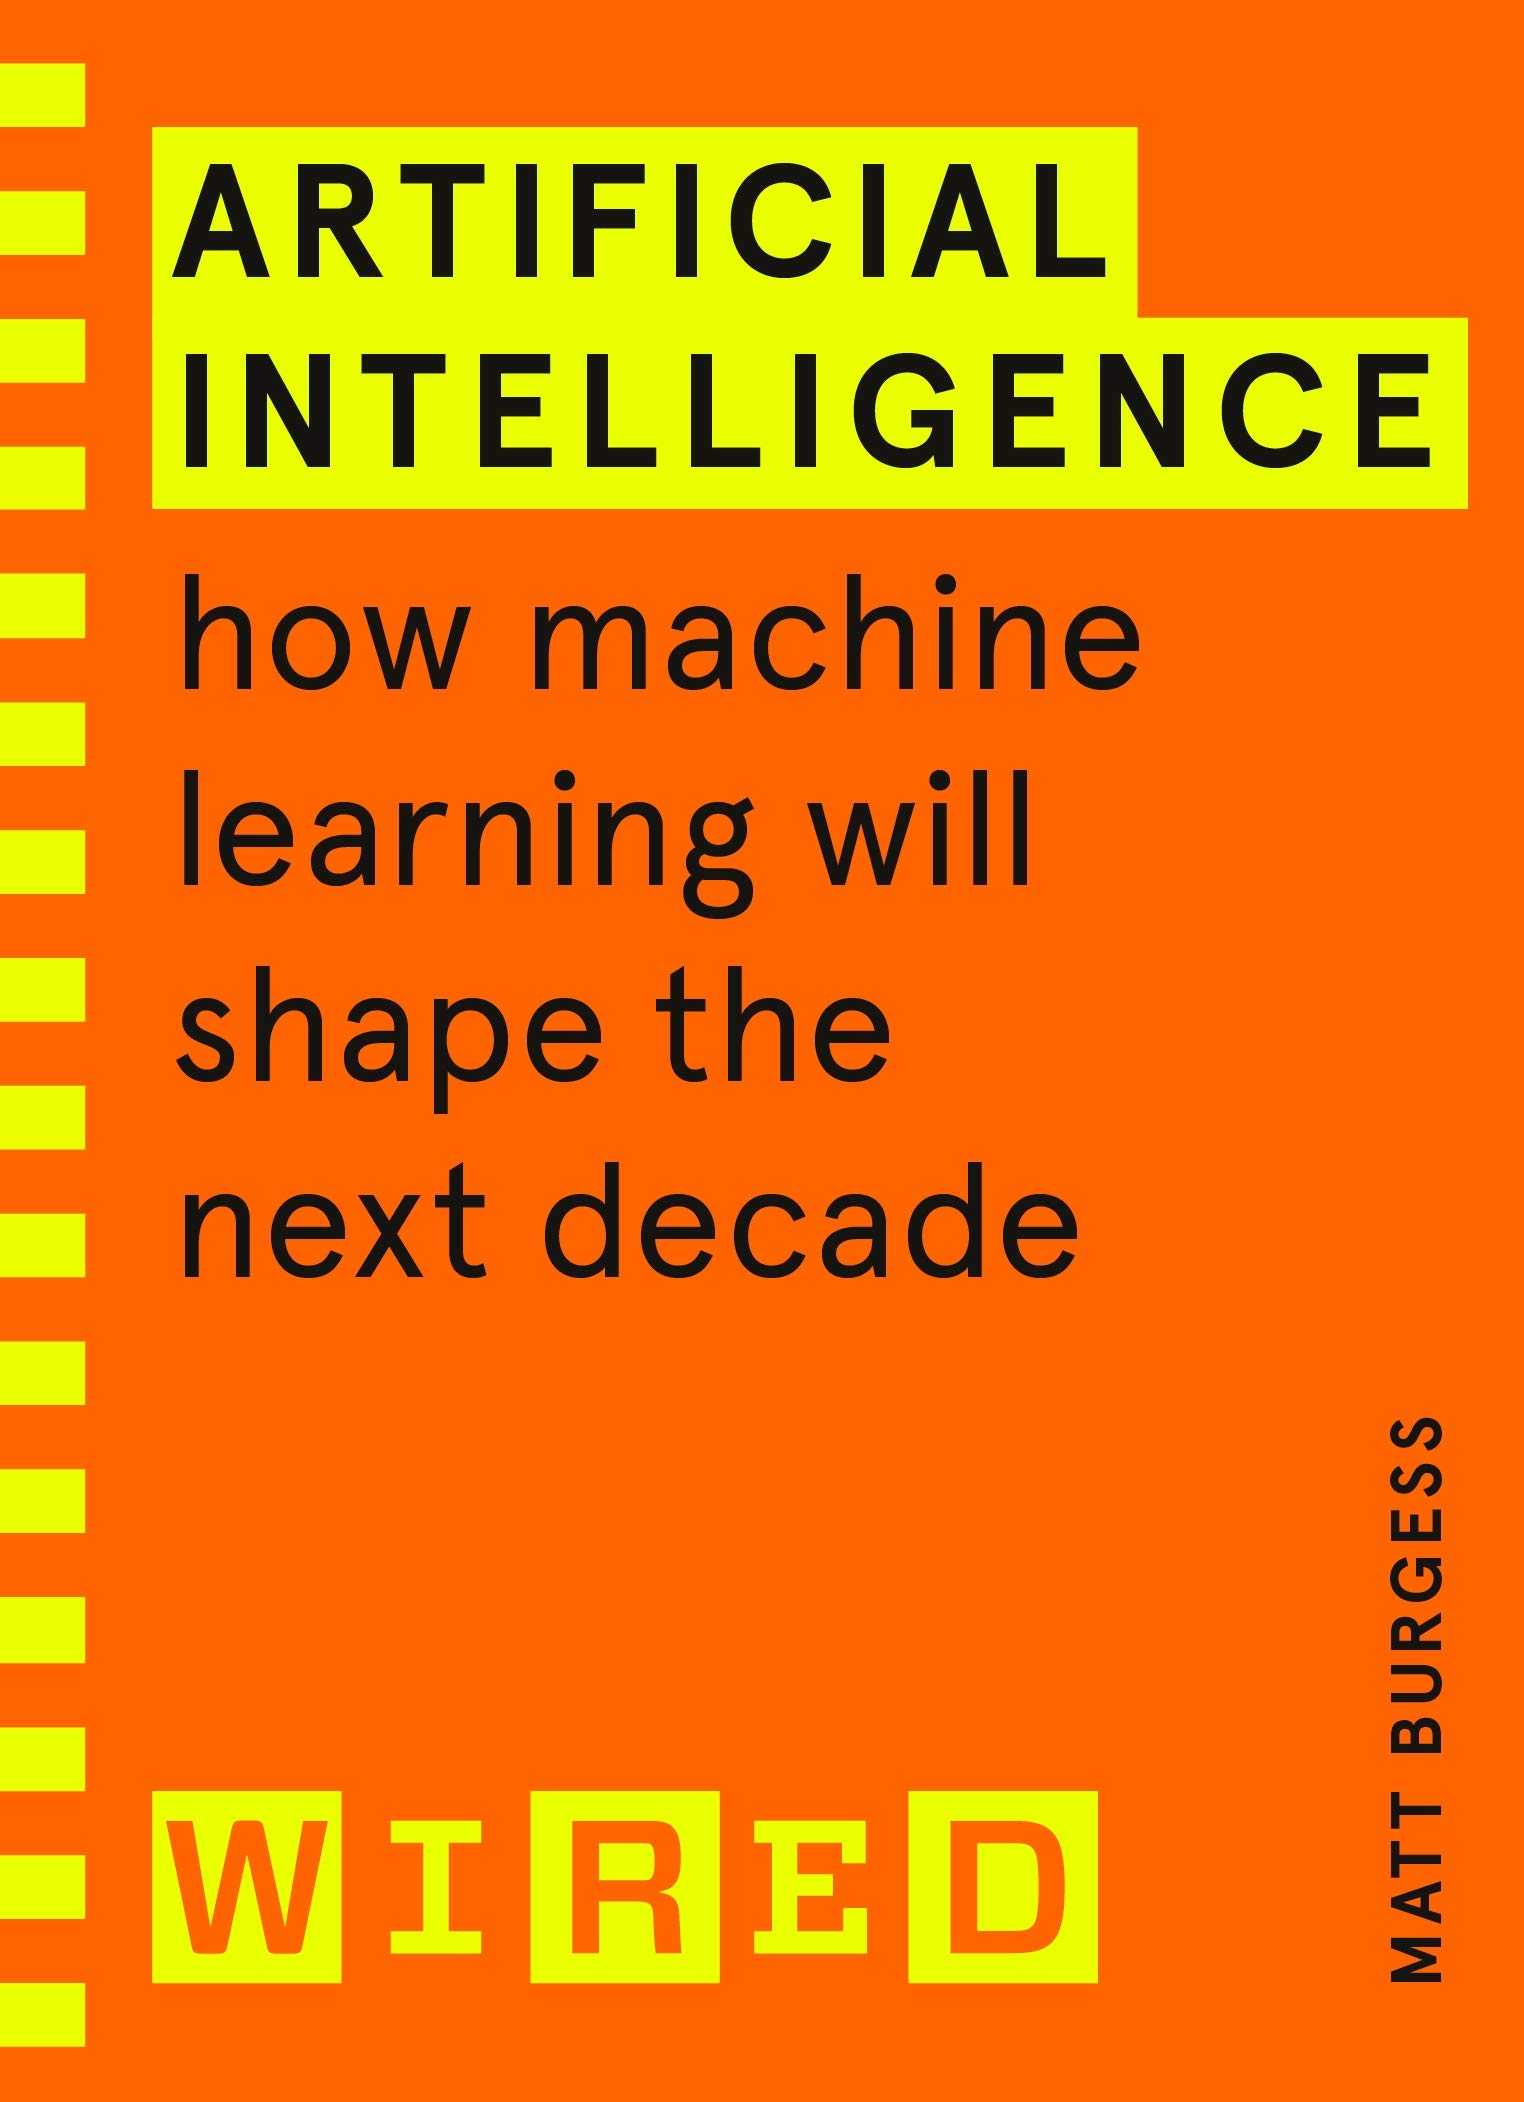 Artificial Intelligence (WIRED guides): How Machine Learning Will Shape the Next Decade